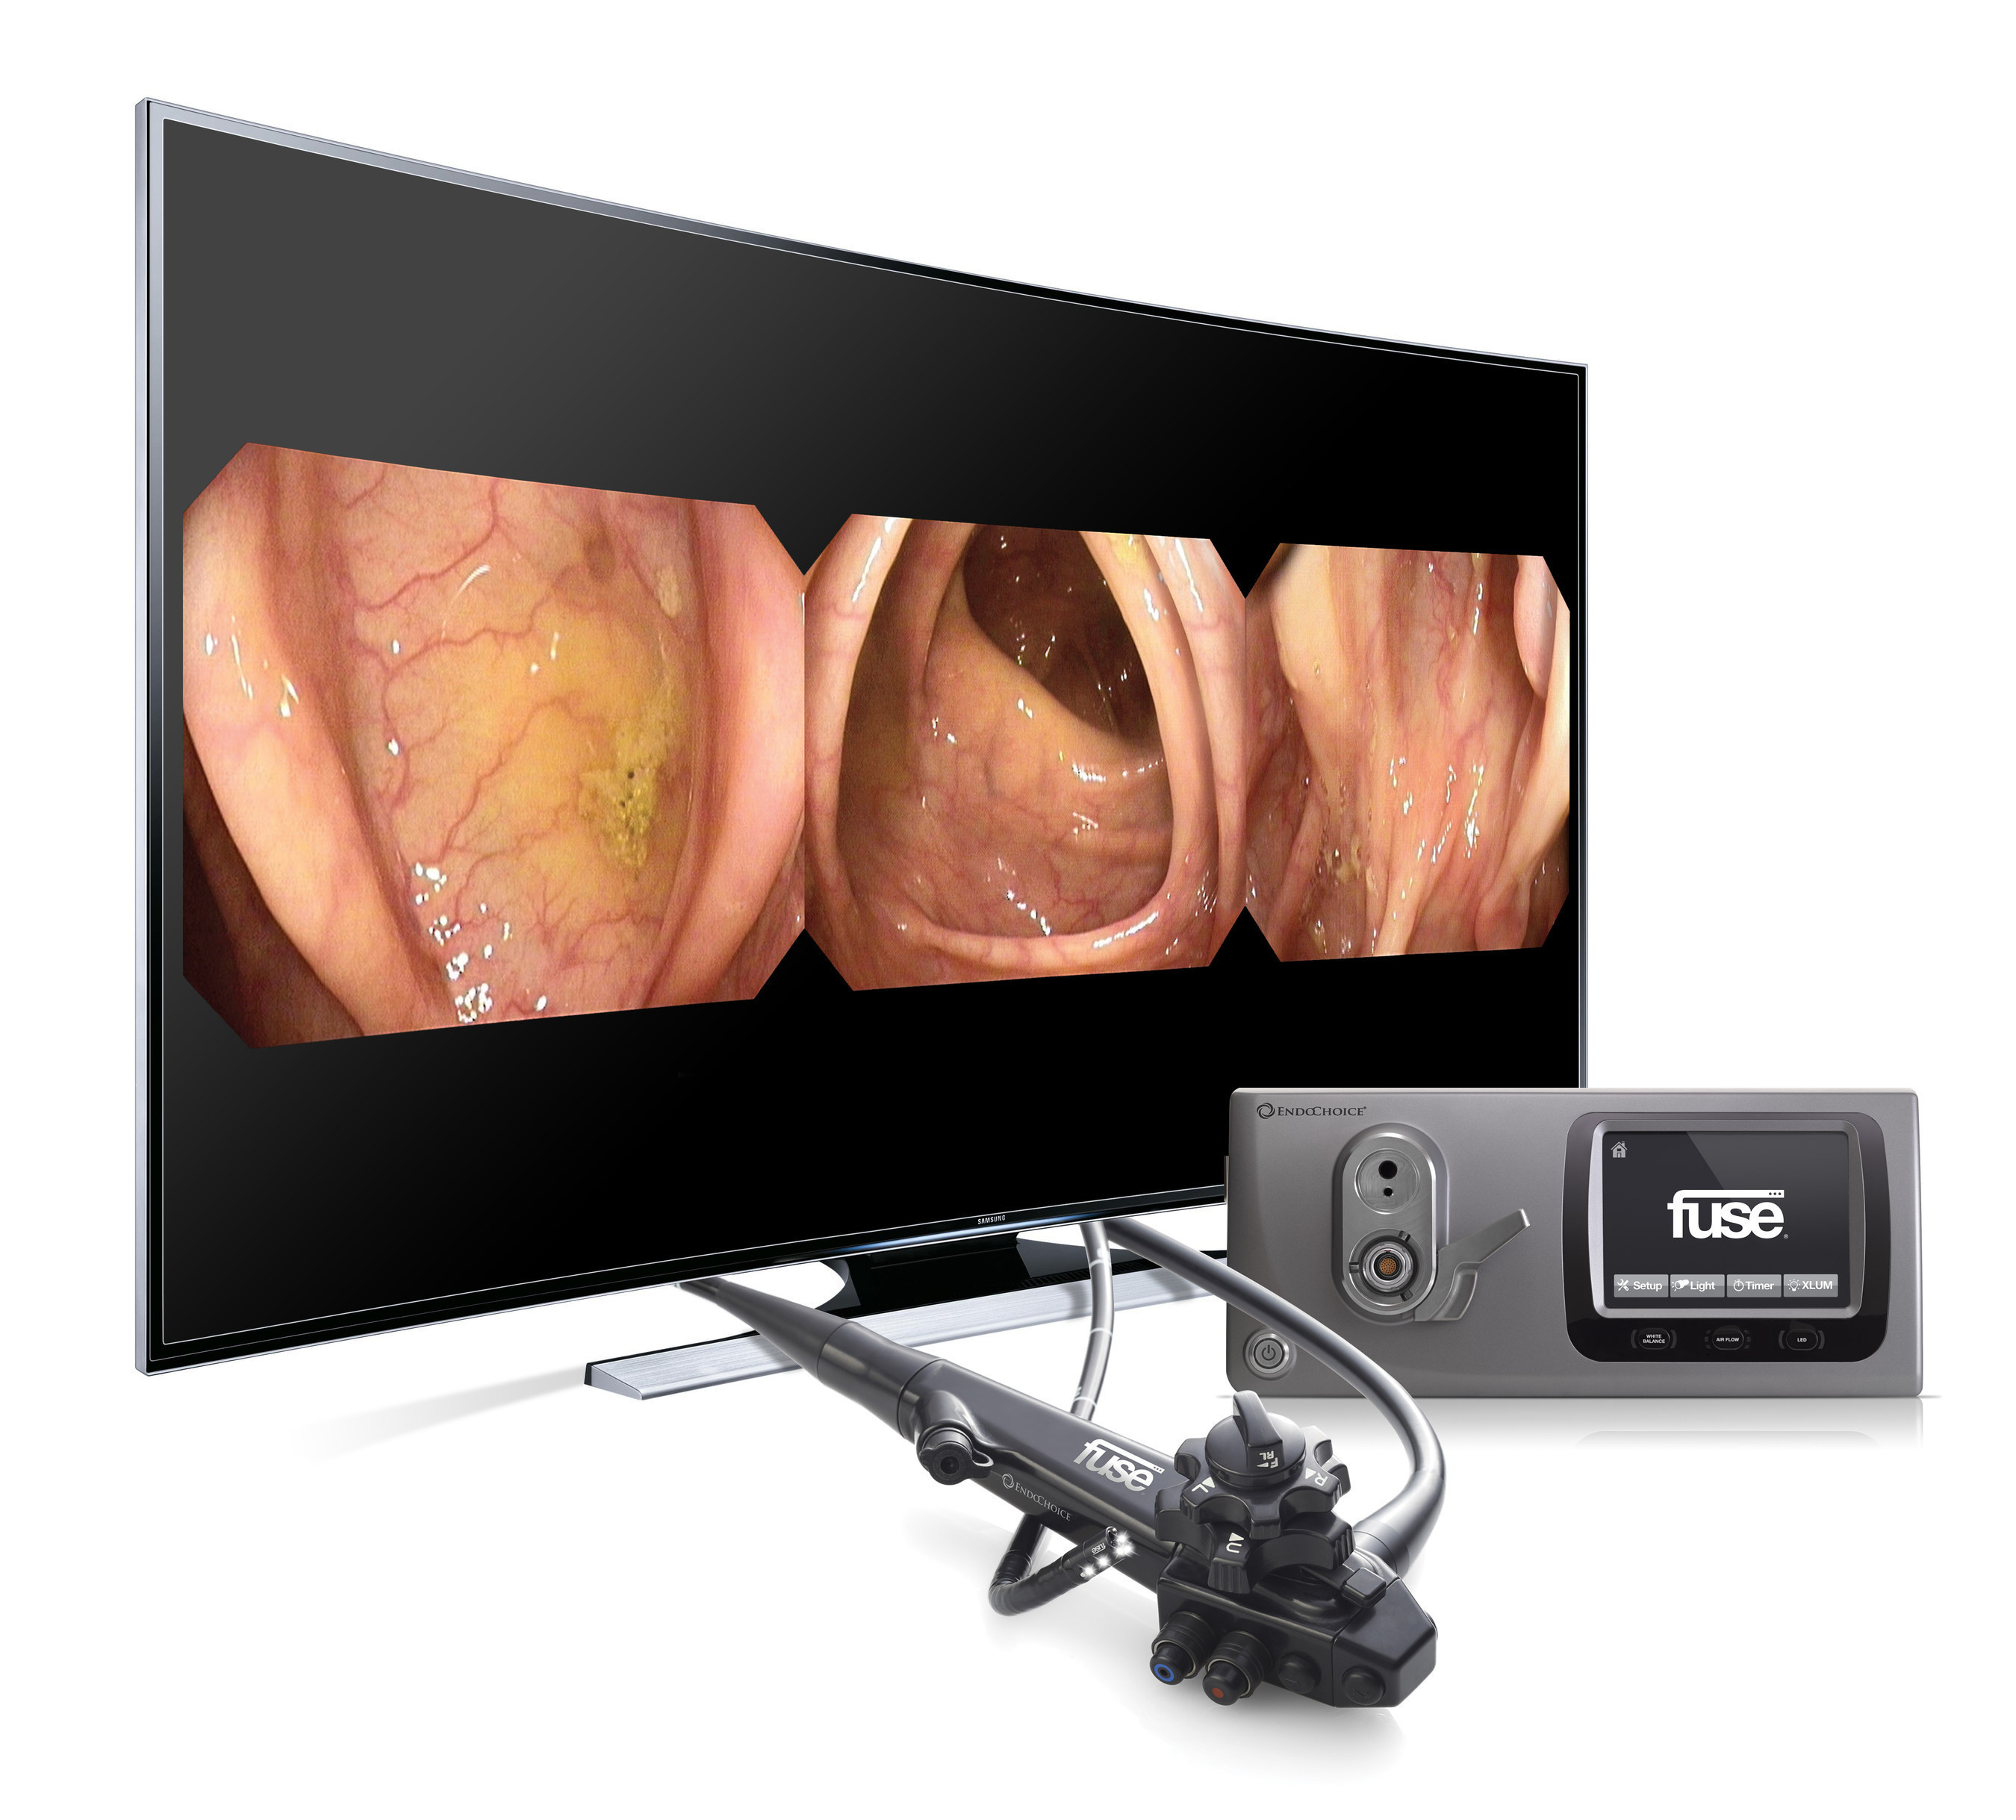 Fuse Second Generation Full Spectrum Endoscopy System Released By Commercial Electrical Box The Features A 4k Ultra Hd Monitor Available At Sizes Up To